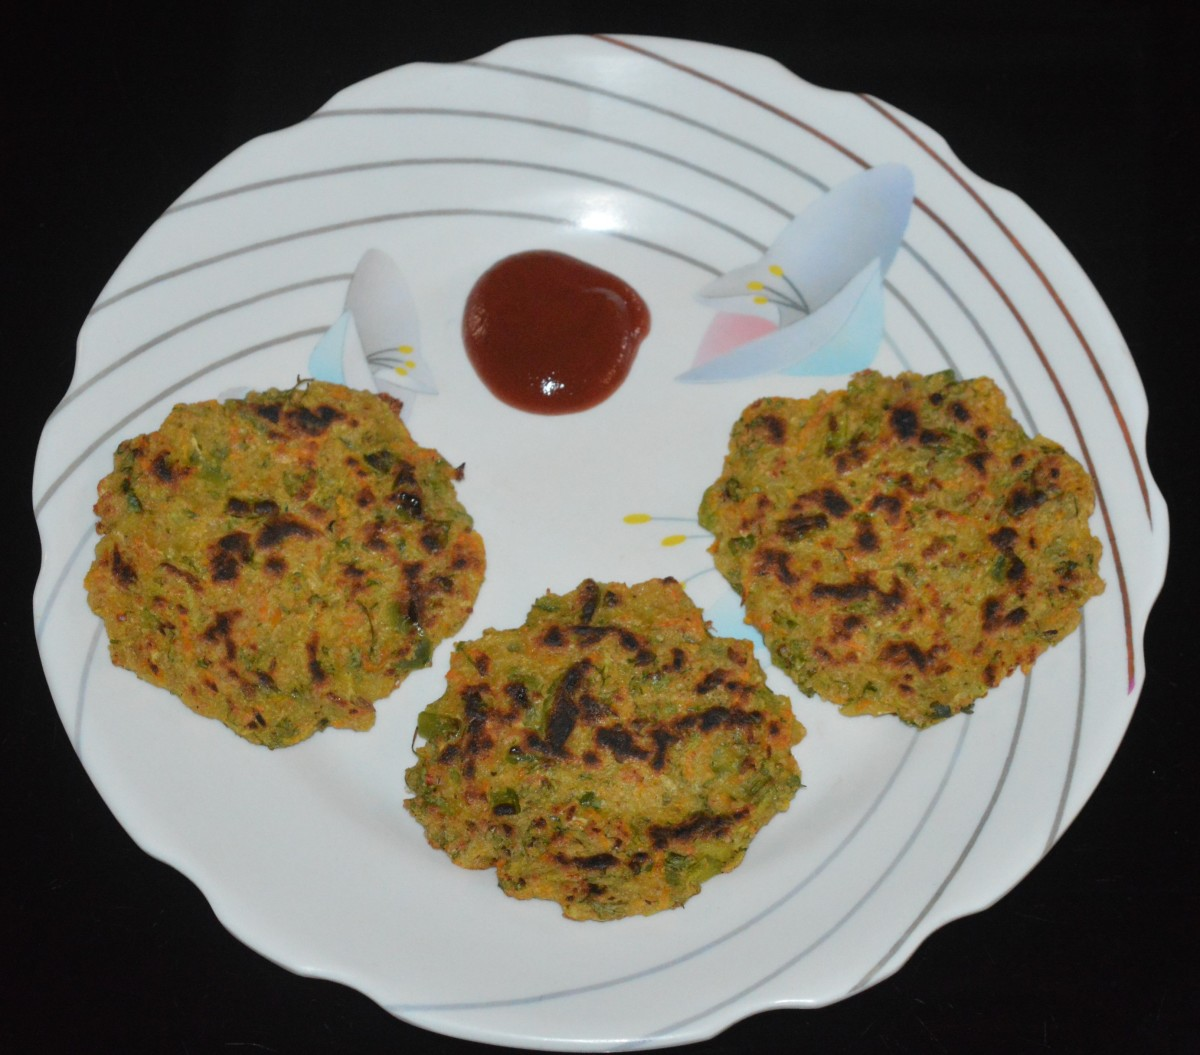 How to Make Instant Oats Besan Cheela